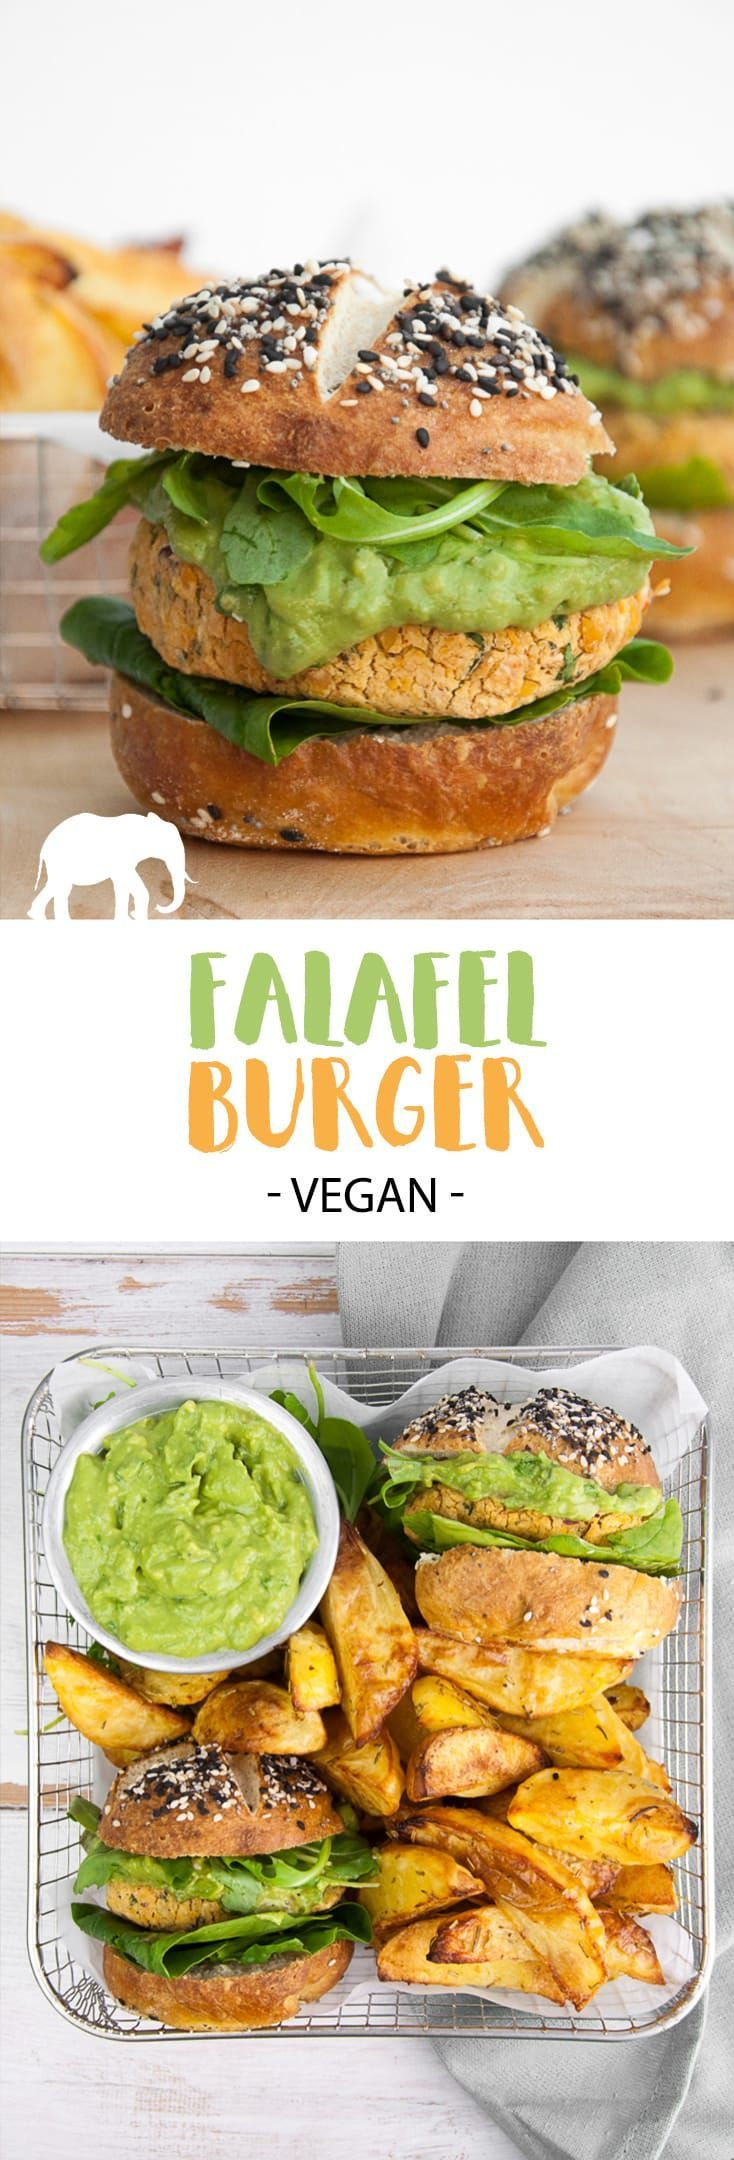 Vegan Falafel Burger #vegan #falafel #burger #chickpeas | ElephantasticVegan.com via @elephantasticv